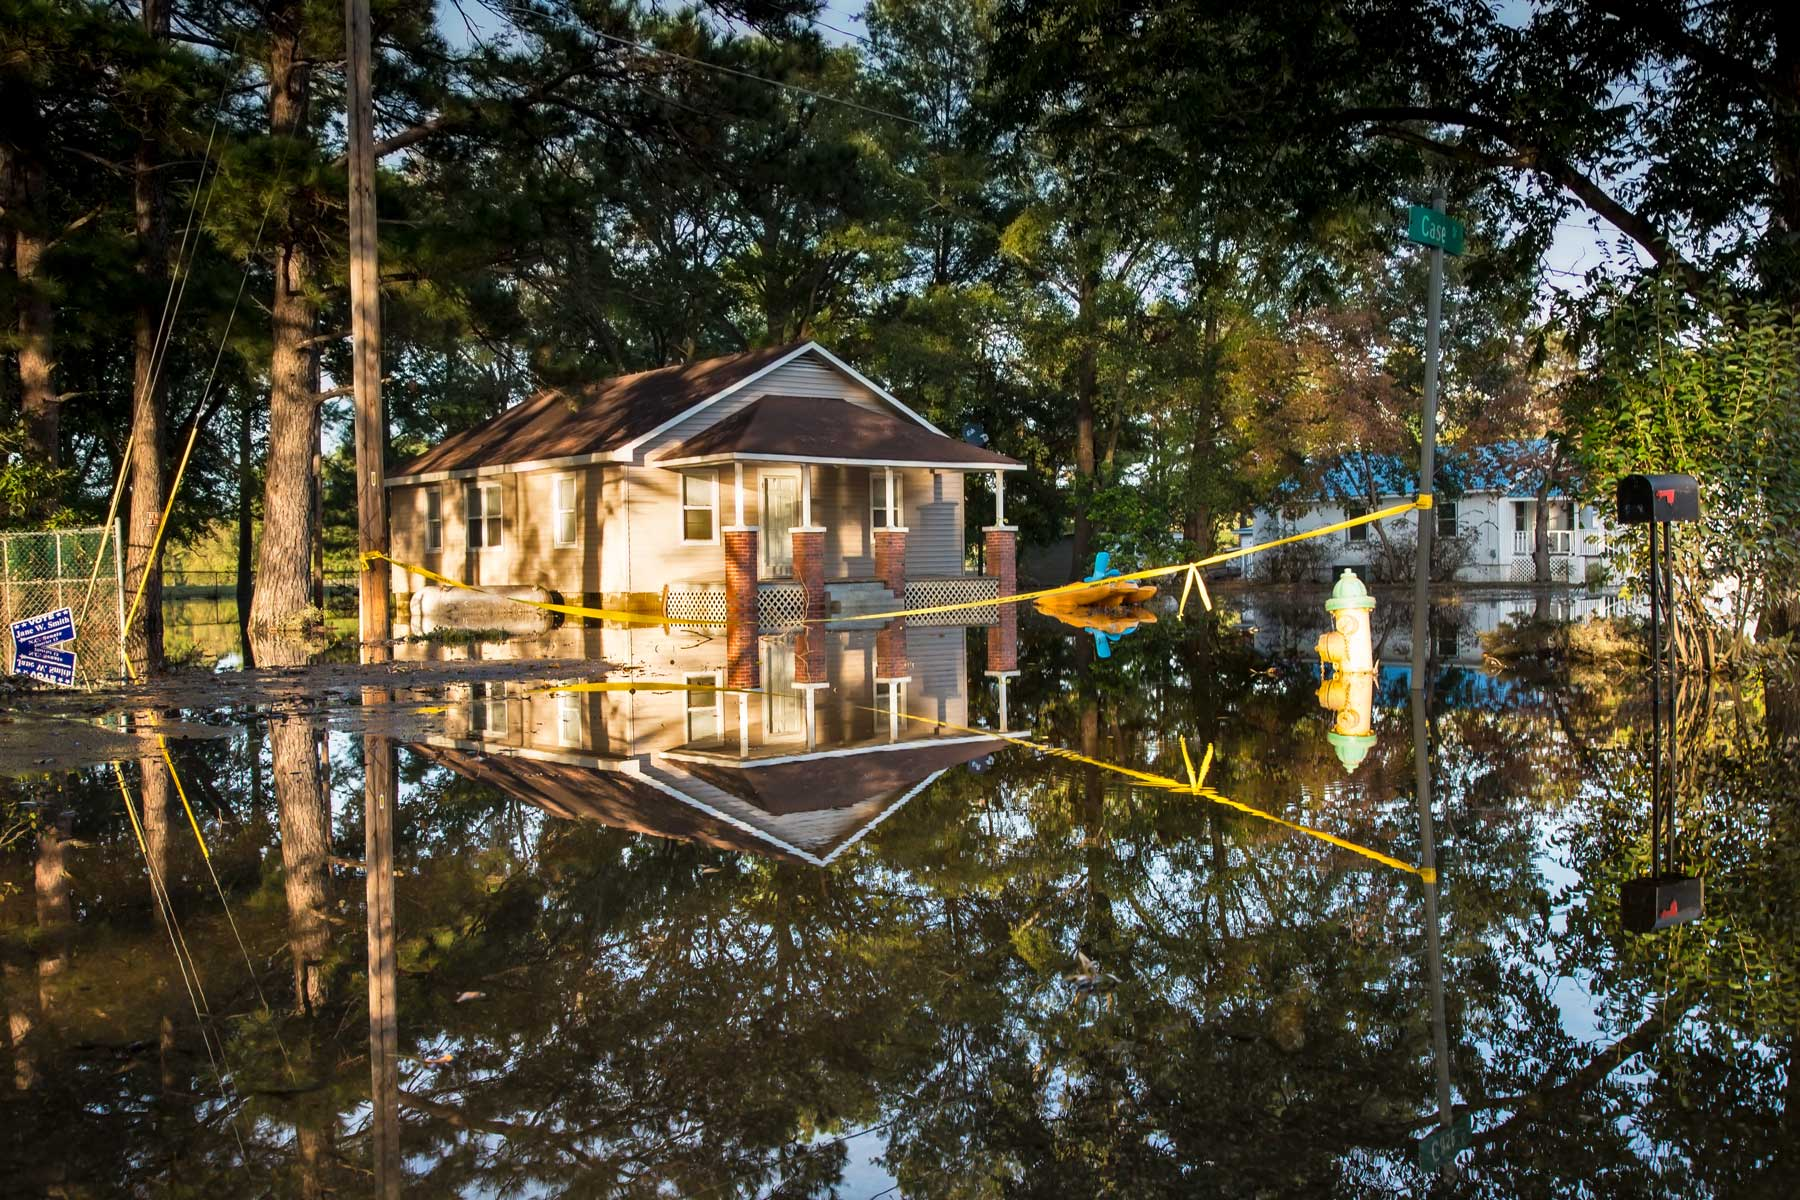 Floodwaters reflect the homes and surrounding trees of homes. (Julie Dermansky)